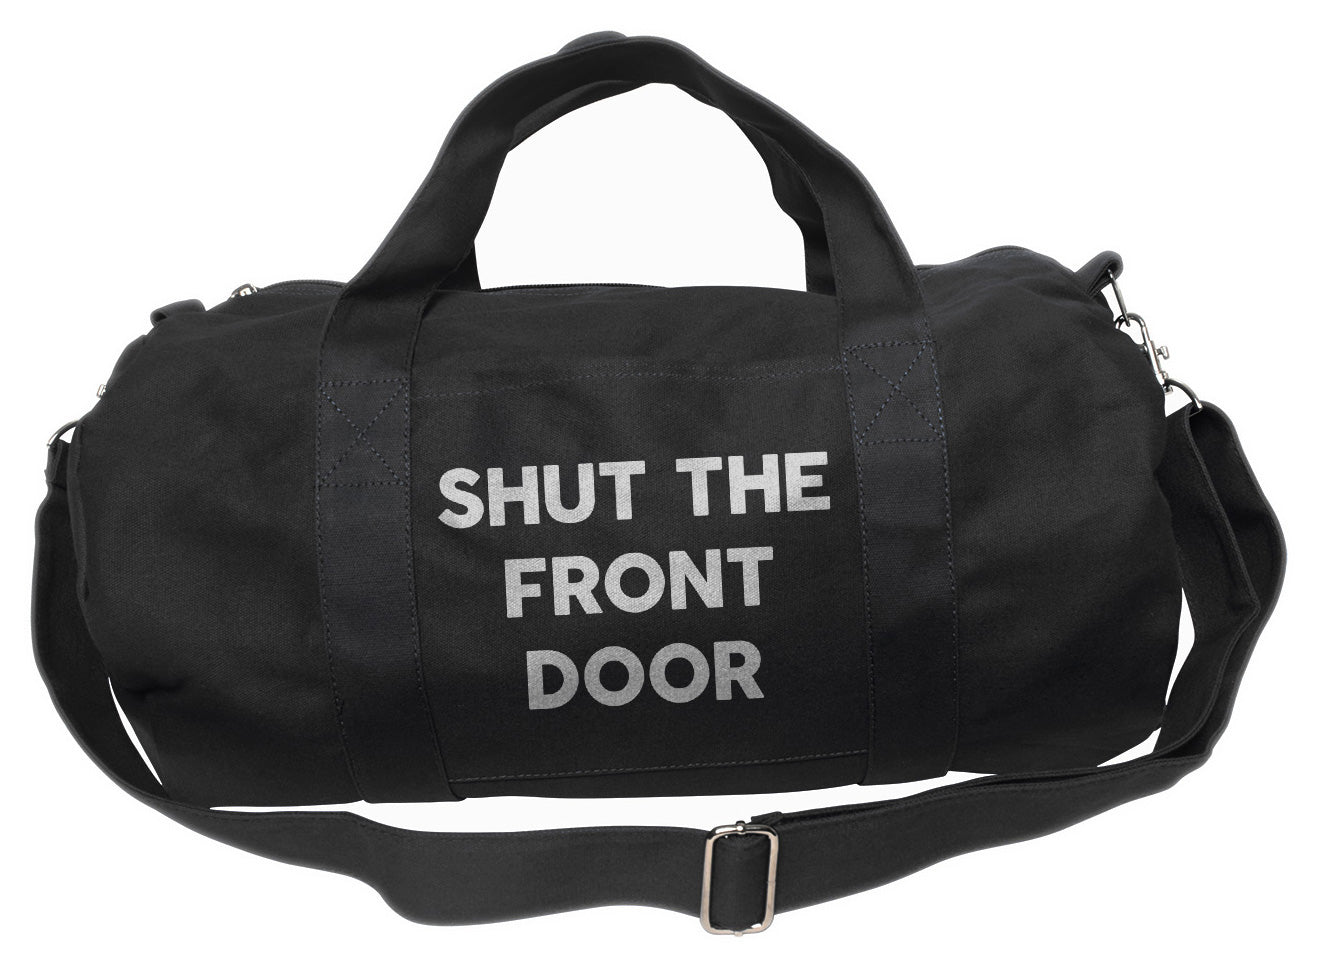 Shut The Front Door Duffel Bag